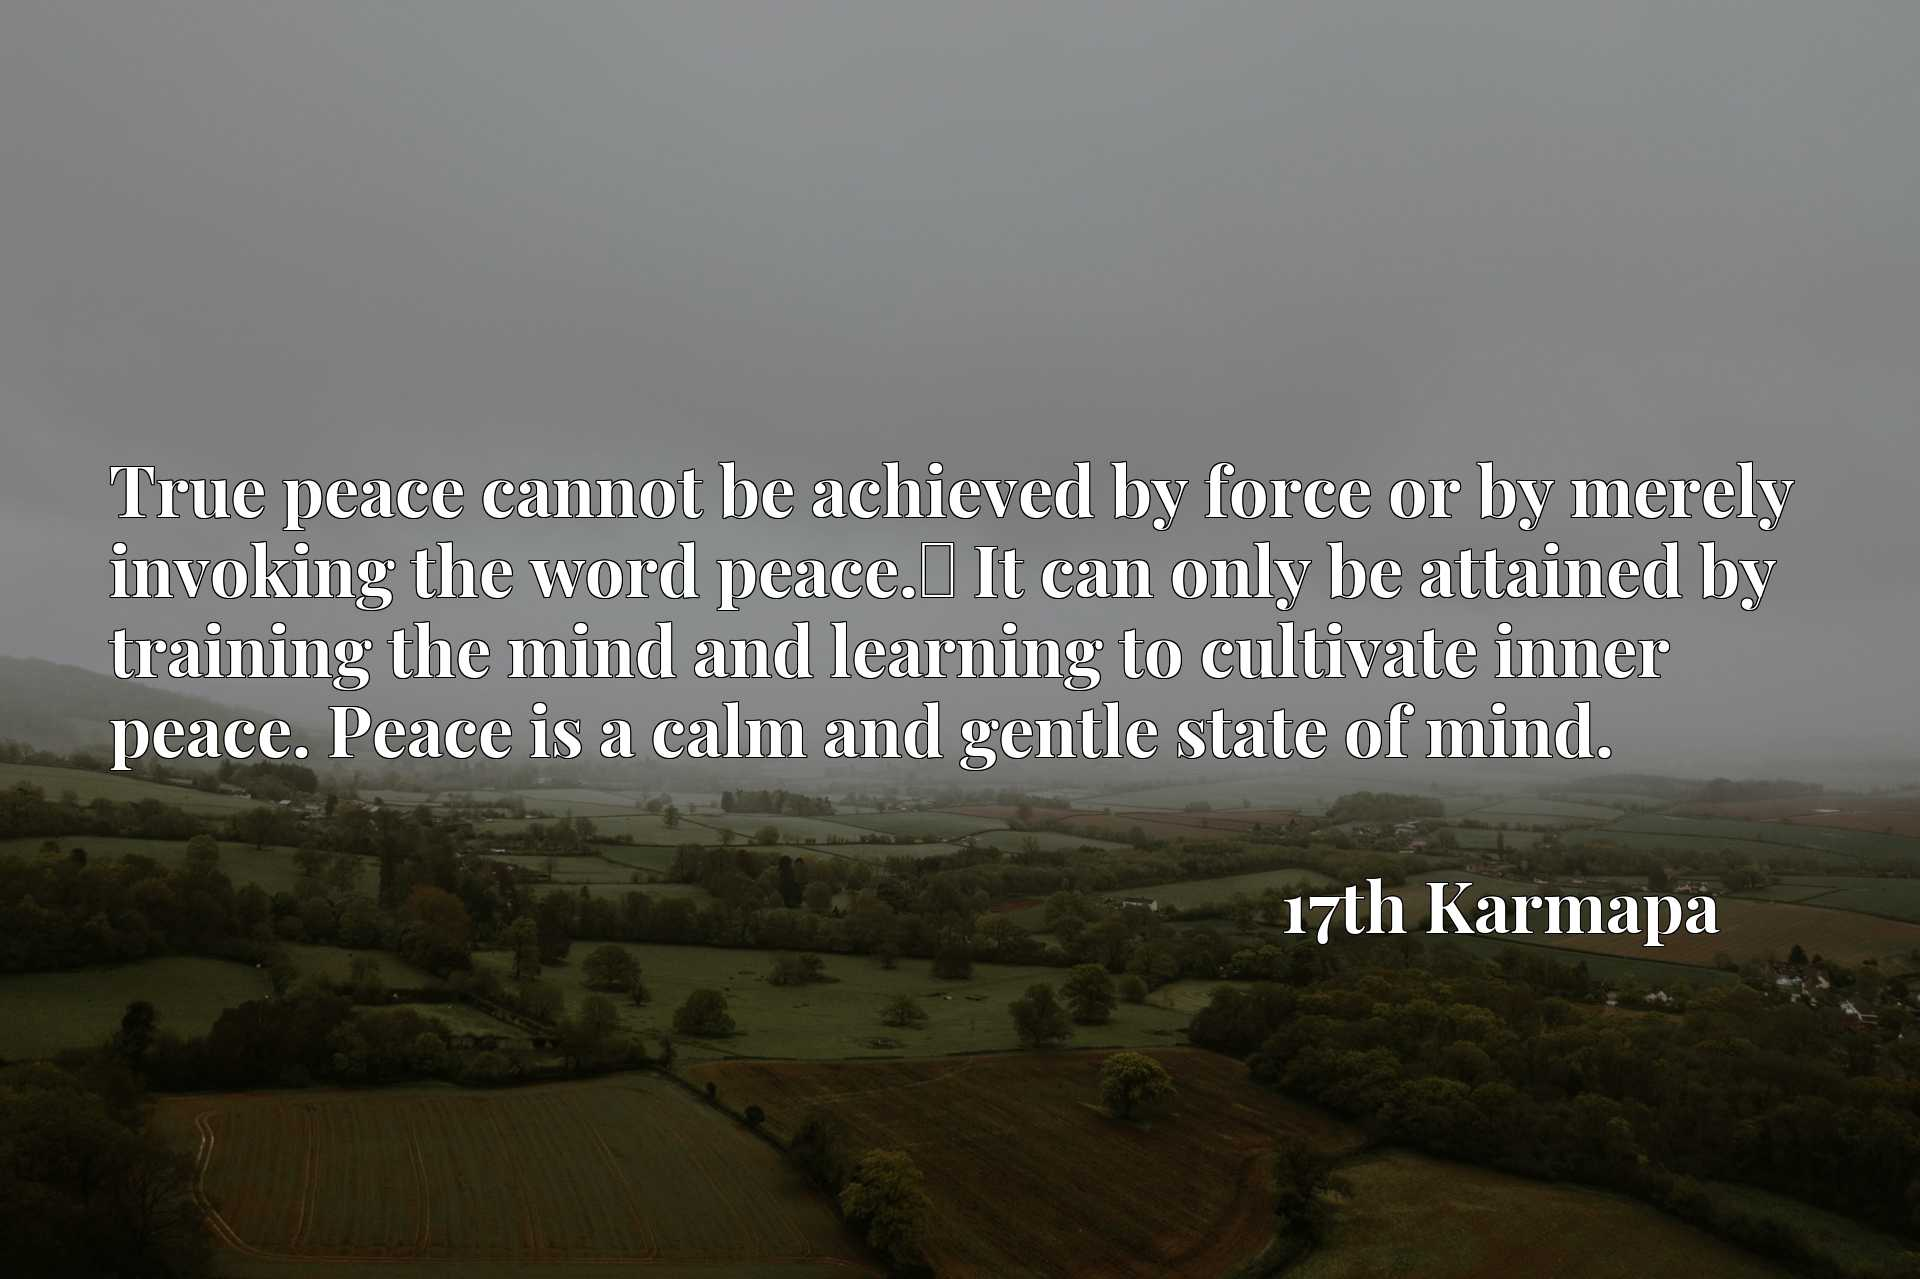 True peace cannot be achieved by force or by merely invoking the word peace.x9d It can only be attained by training the mind and learning to cultivate inner peace. Peace is a calm and gentle state of mind.